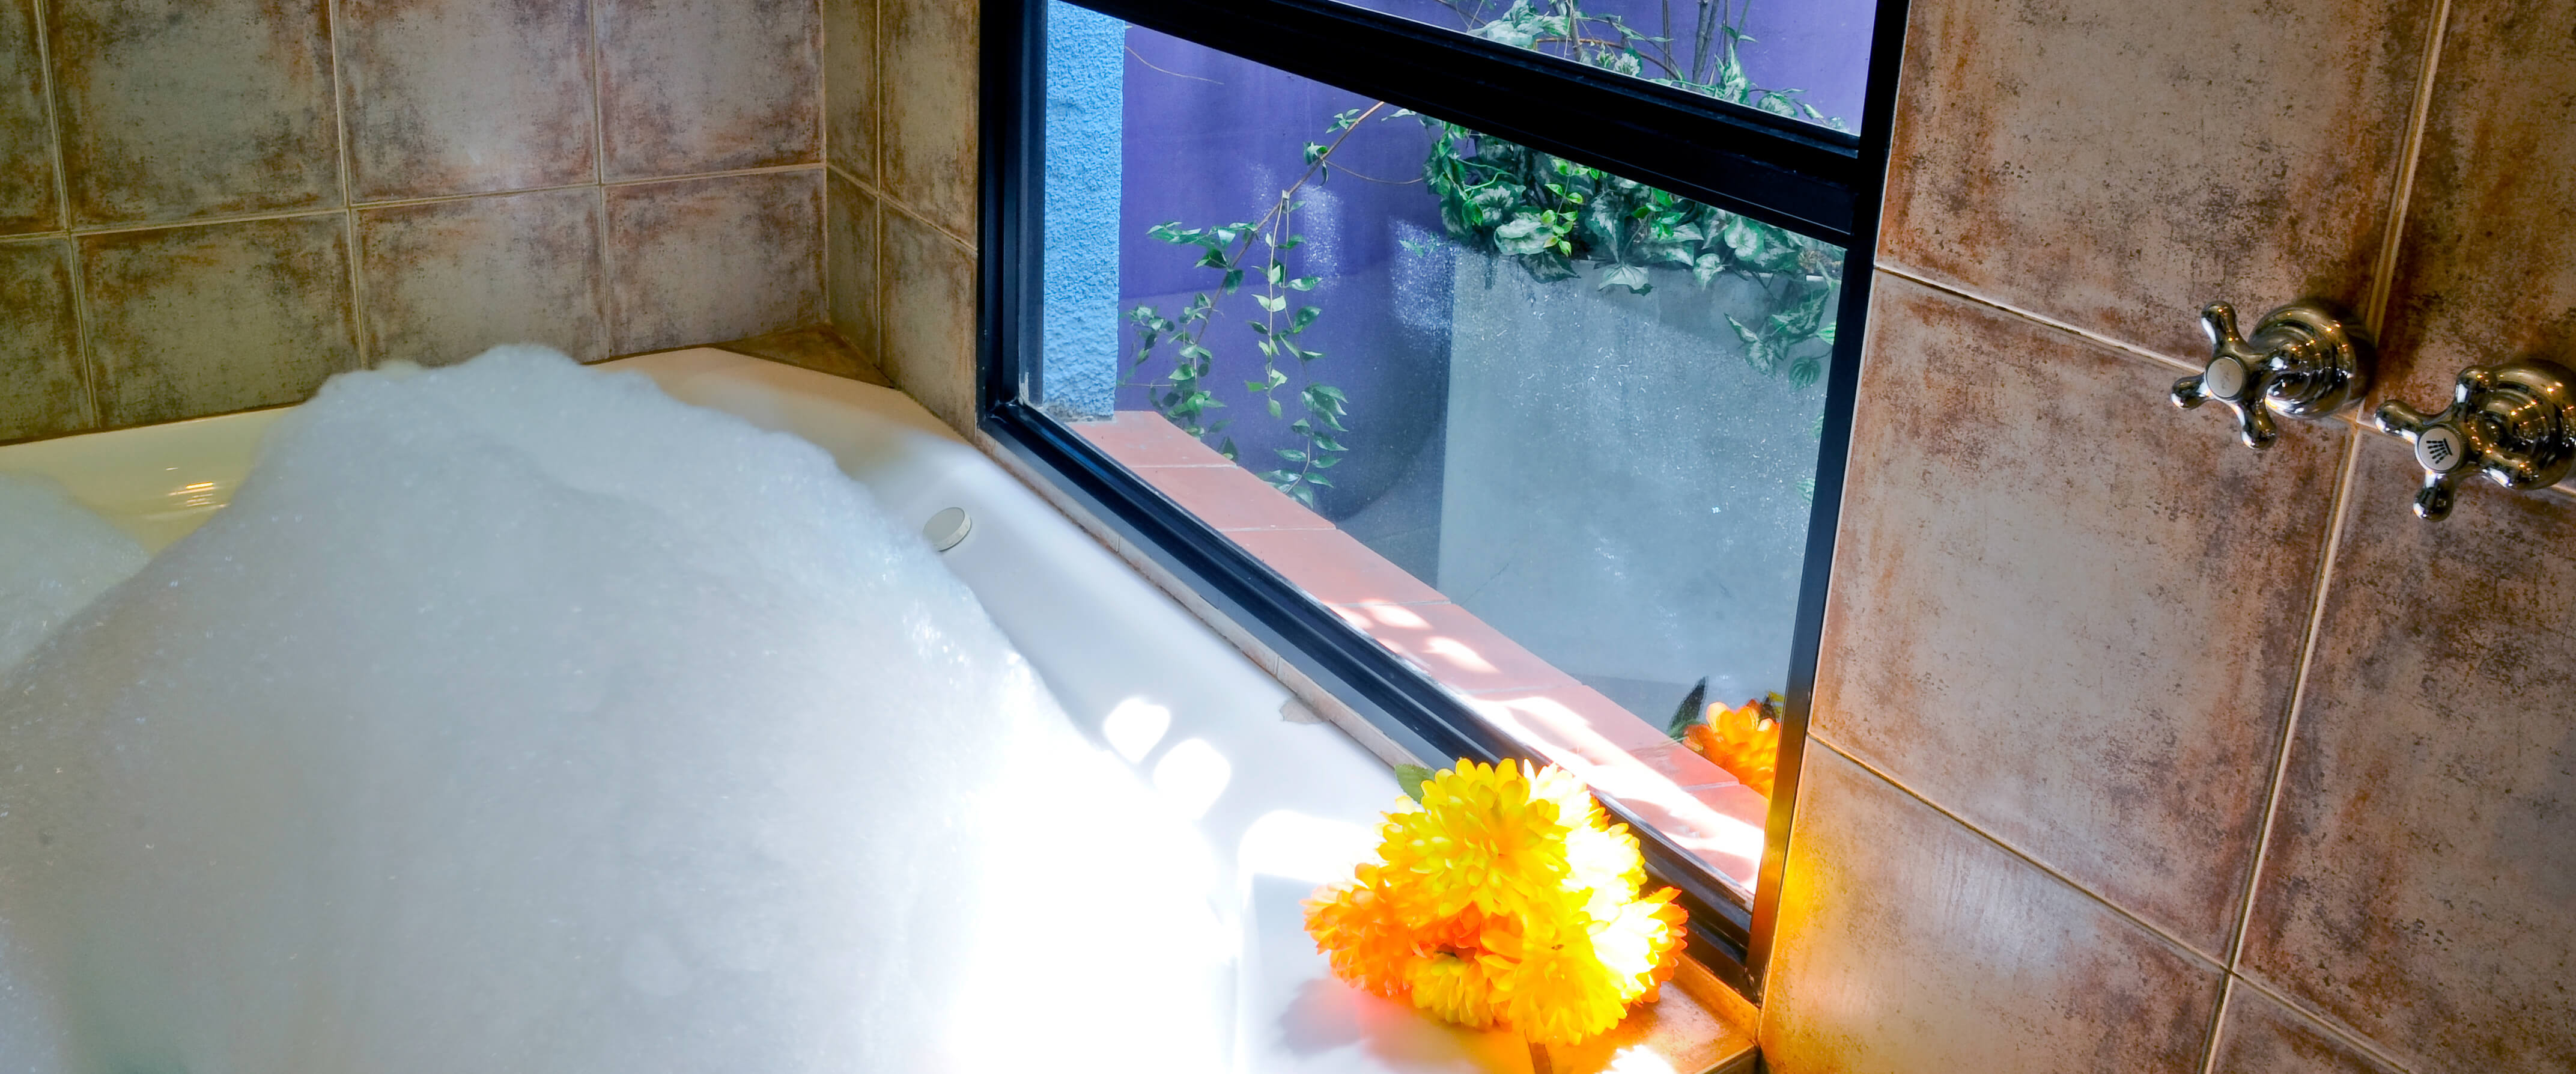 ... Bathtub Reglazing Pros And Cons By Home Bathtub Refinishing Bathtub  Doctor 516 931 8311 ...